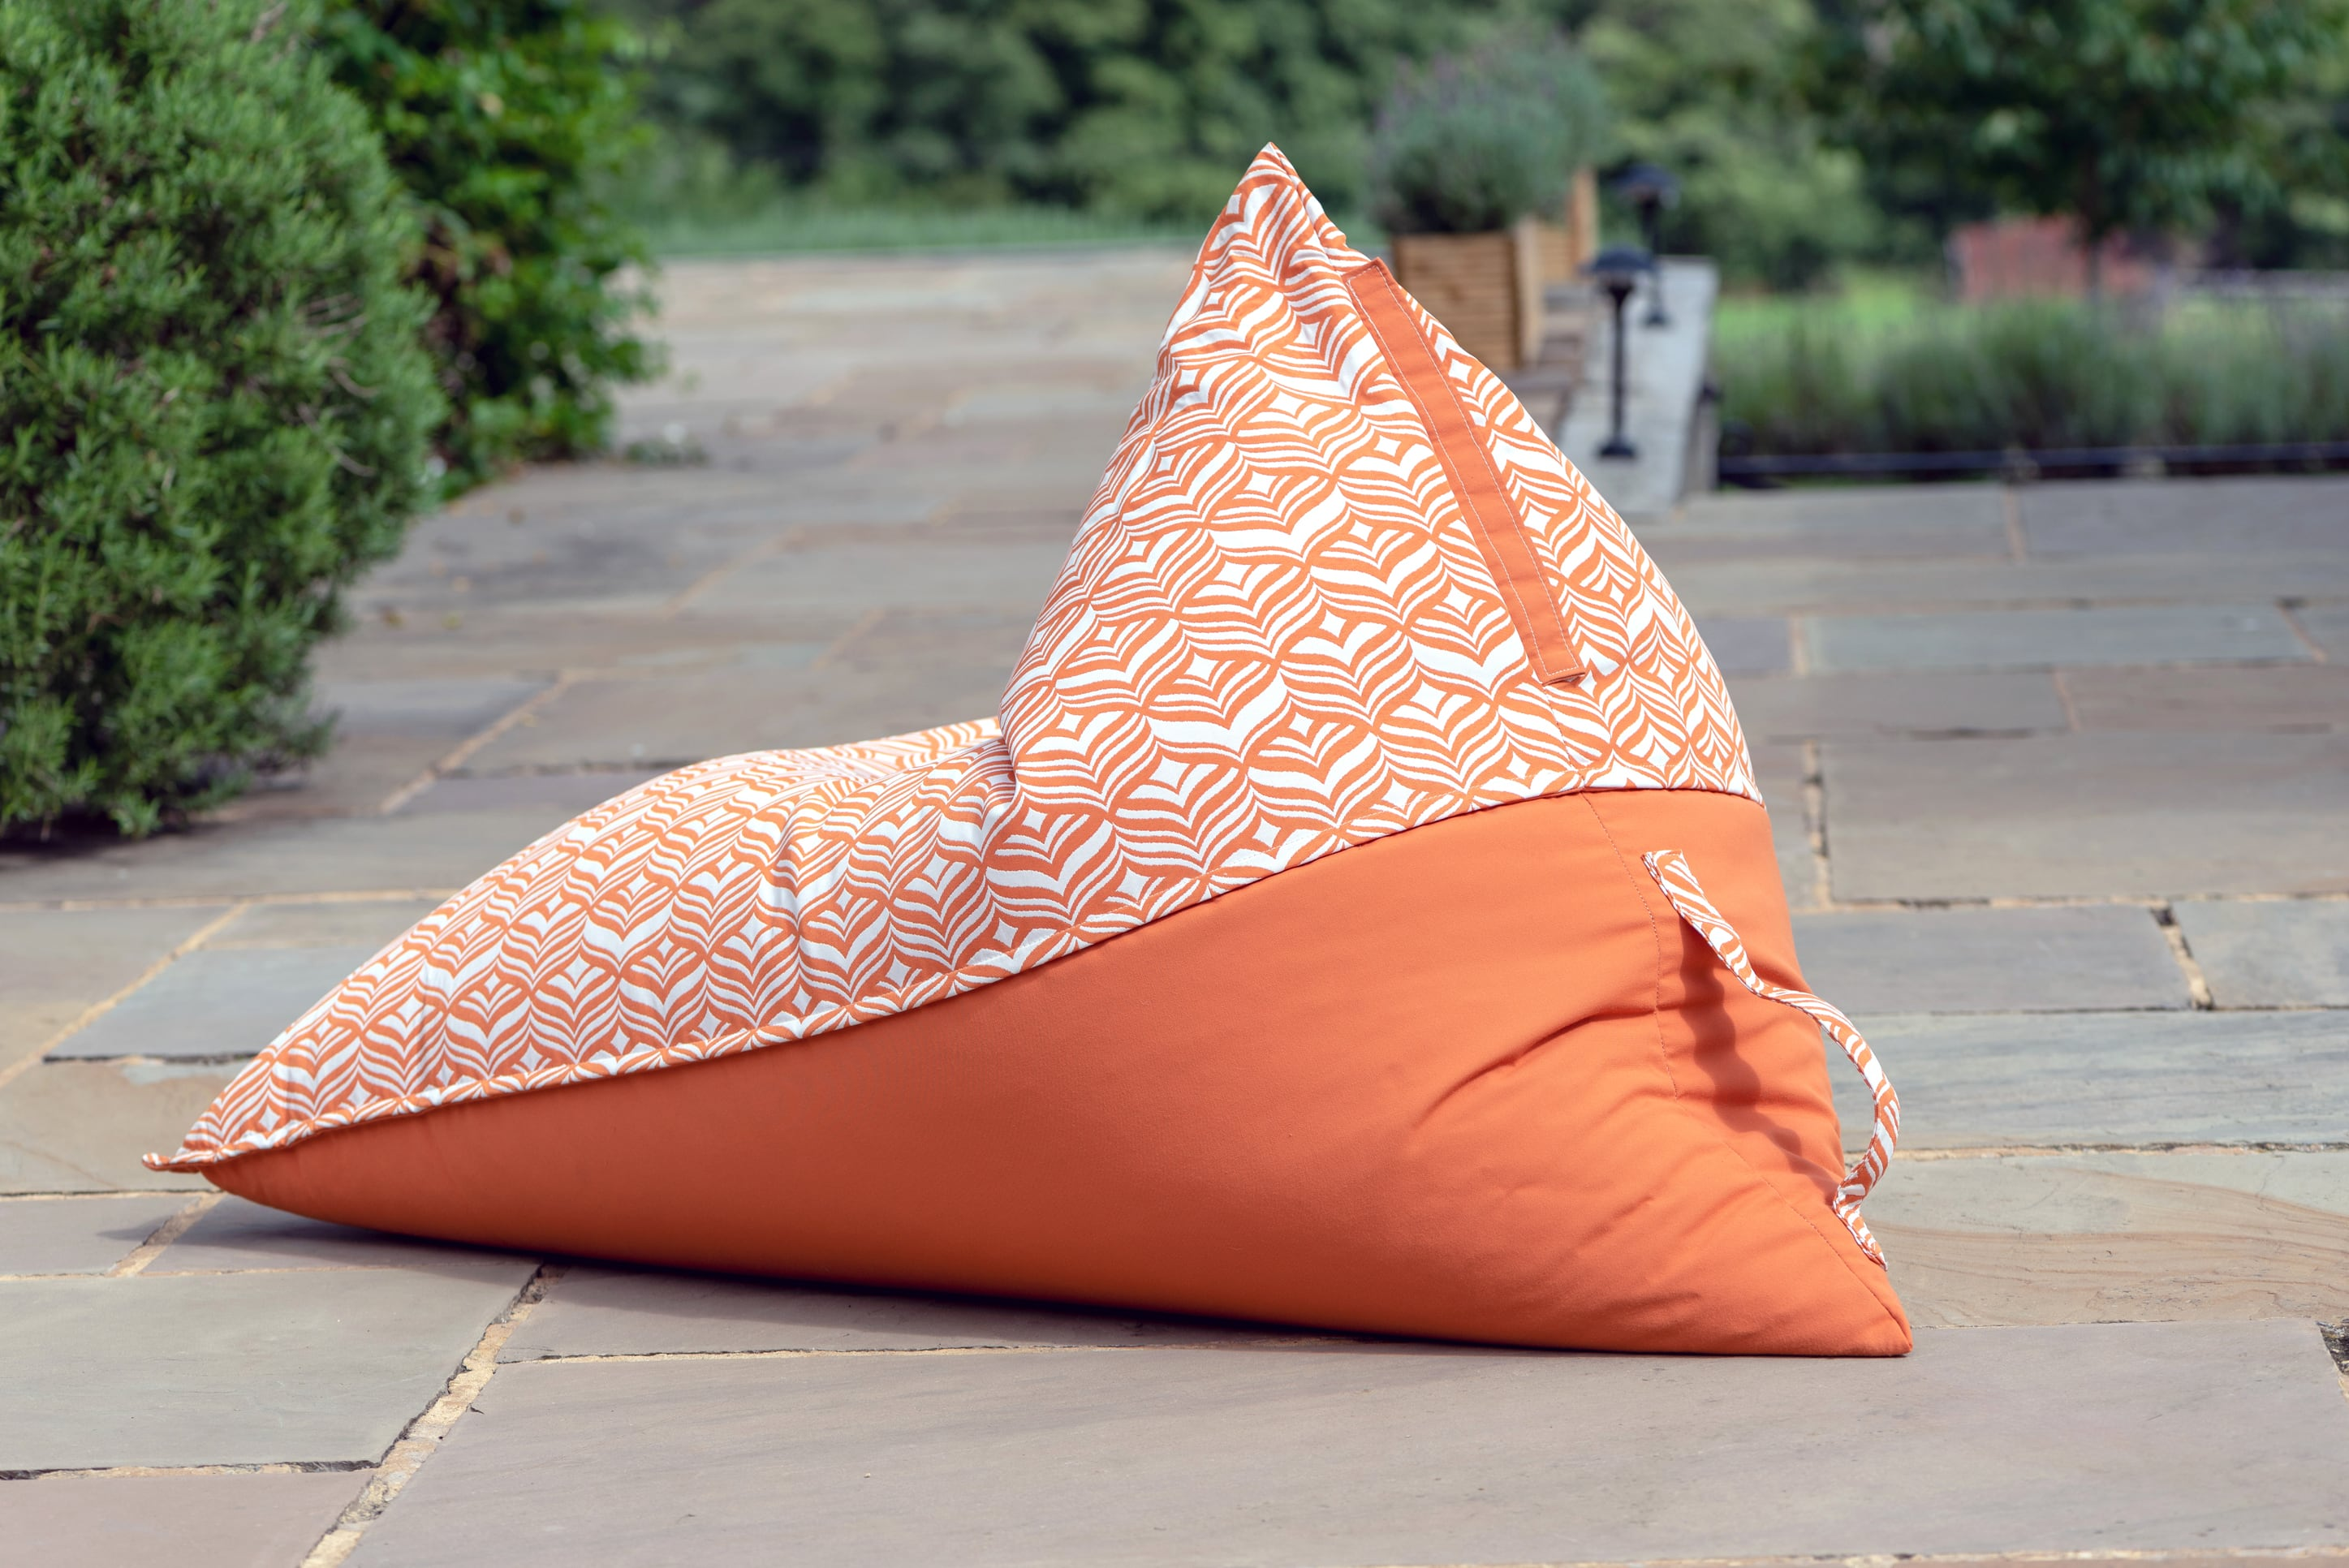 Armadillo Sun bean bag chair in orange and white tulip pattern outdoors